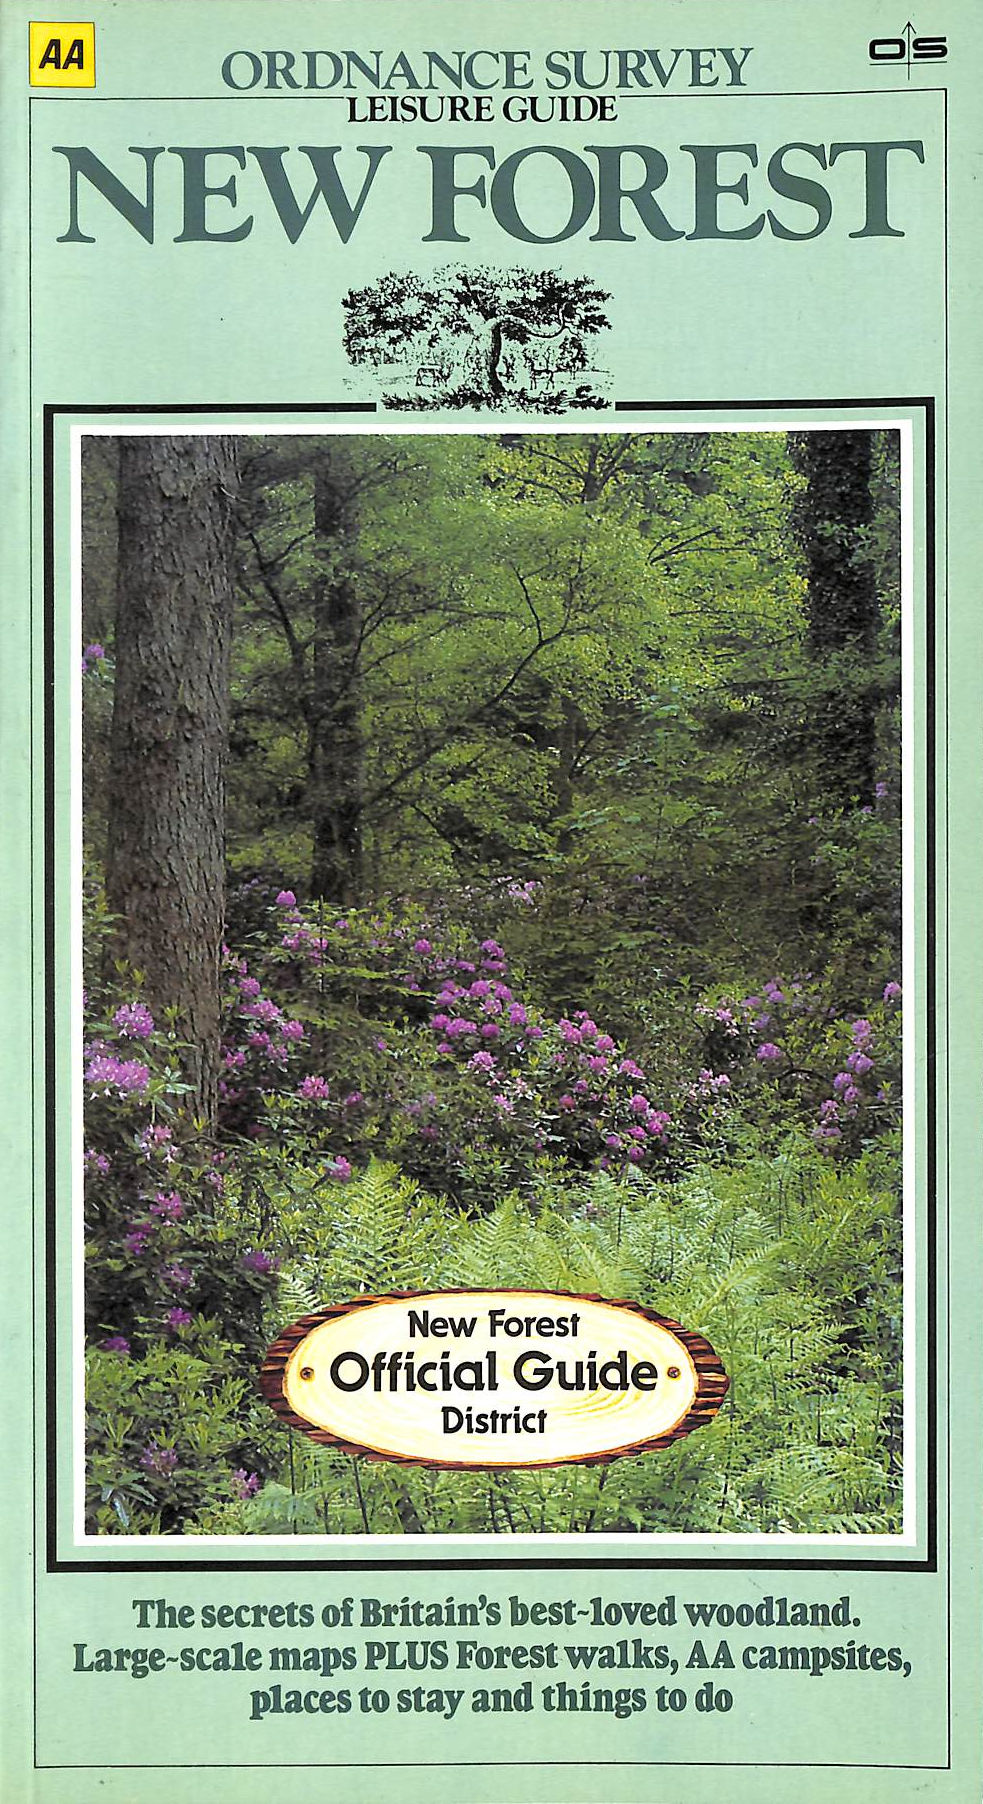 Image for Leisure Guide New Forest (Aa / Os Leisure Guide)